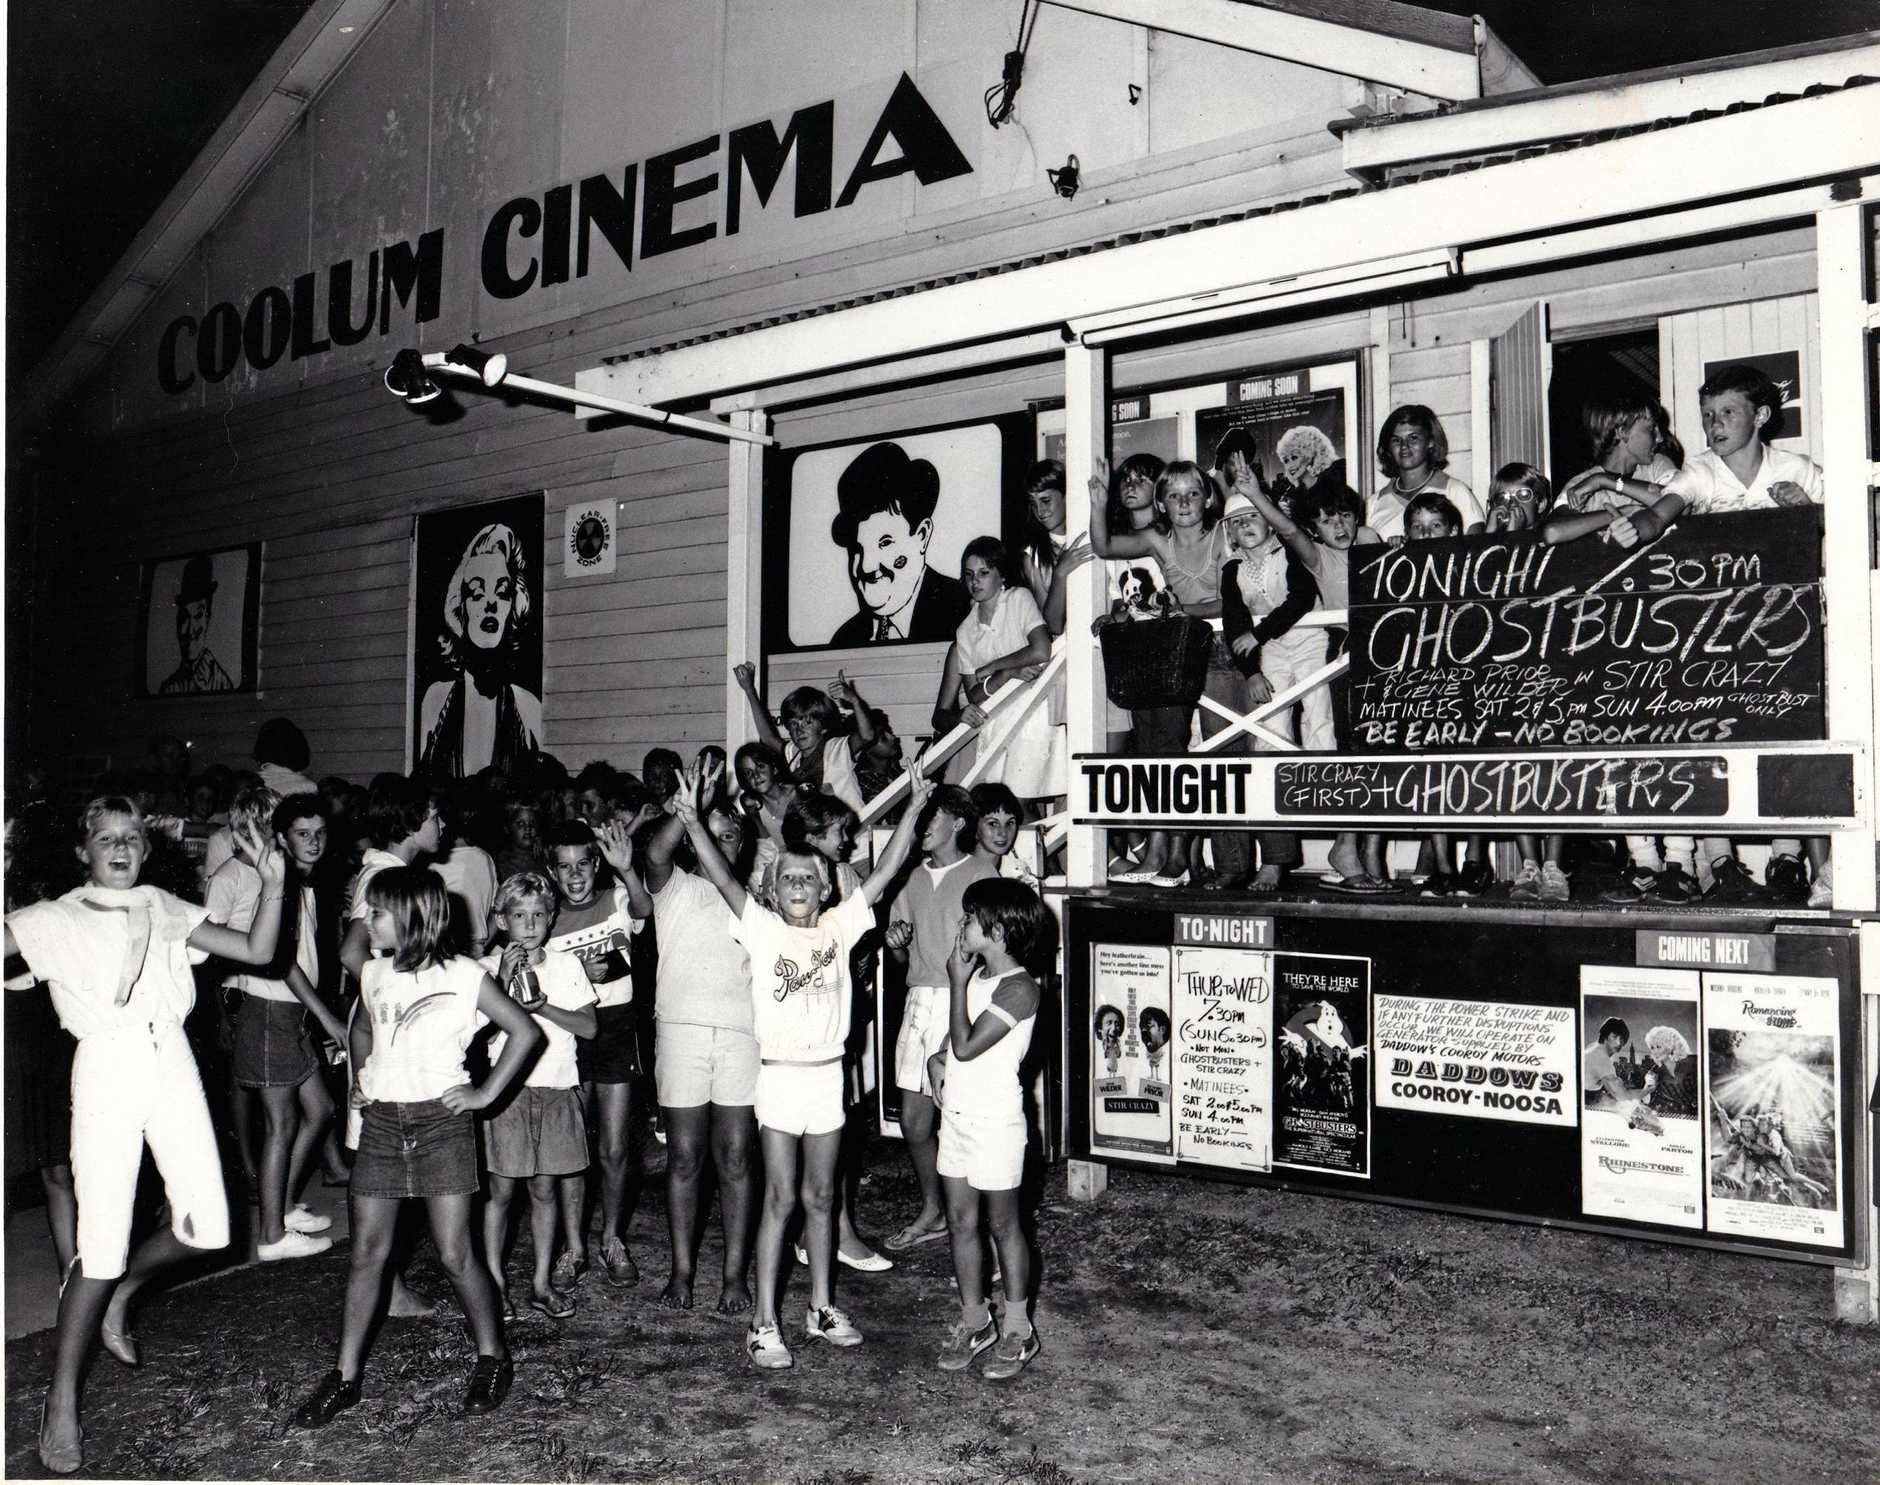 Kids queue for a screening at the Coolum Cinema.